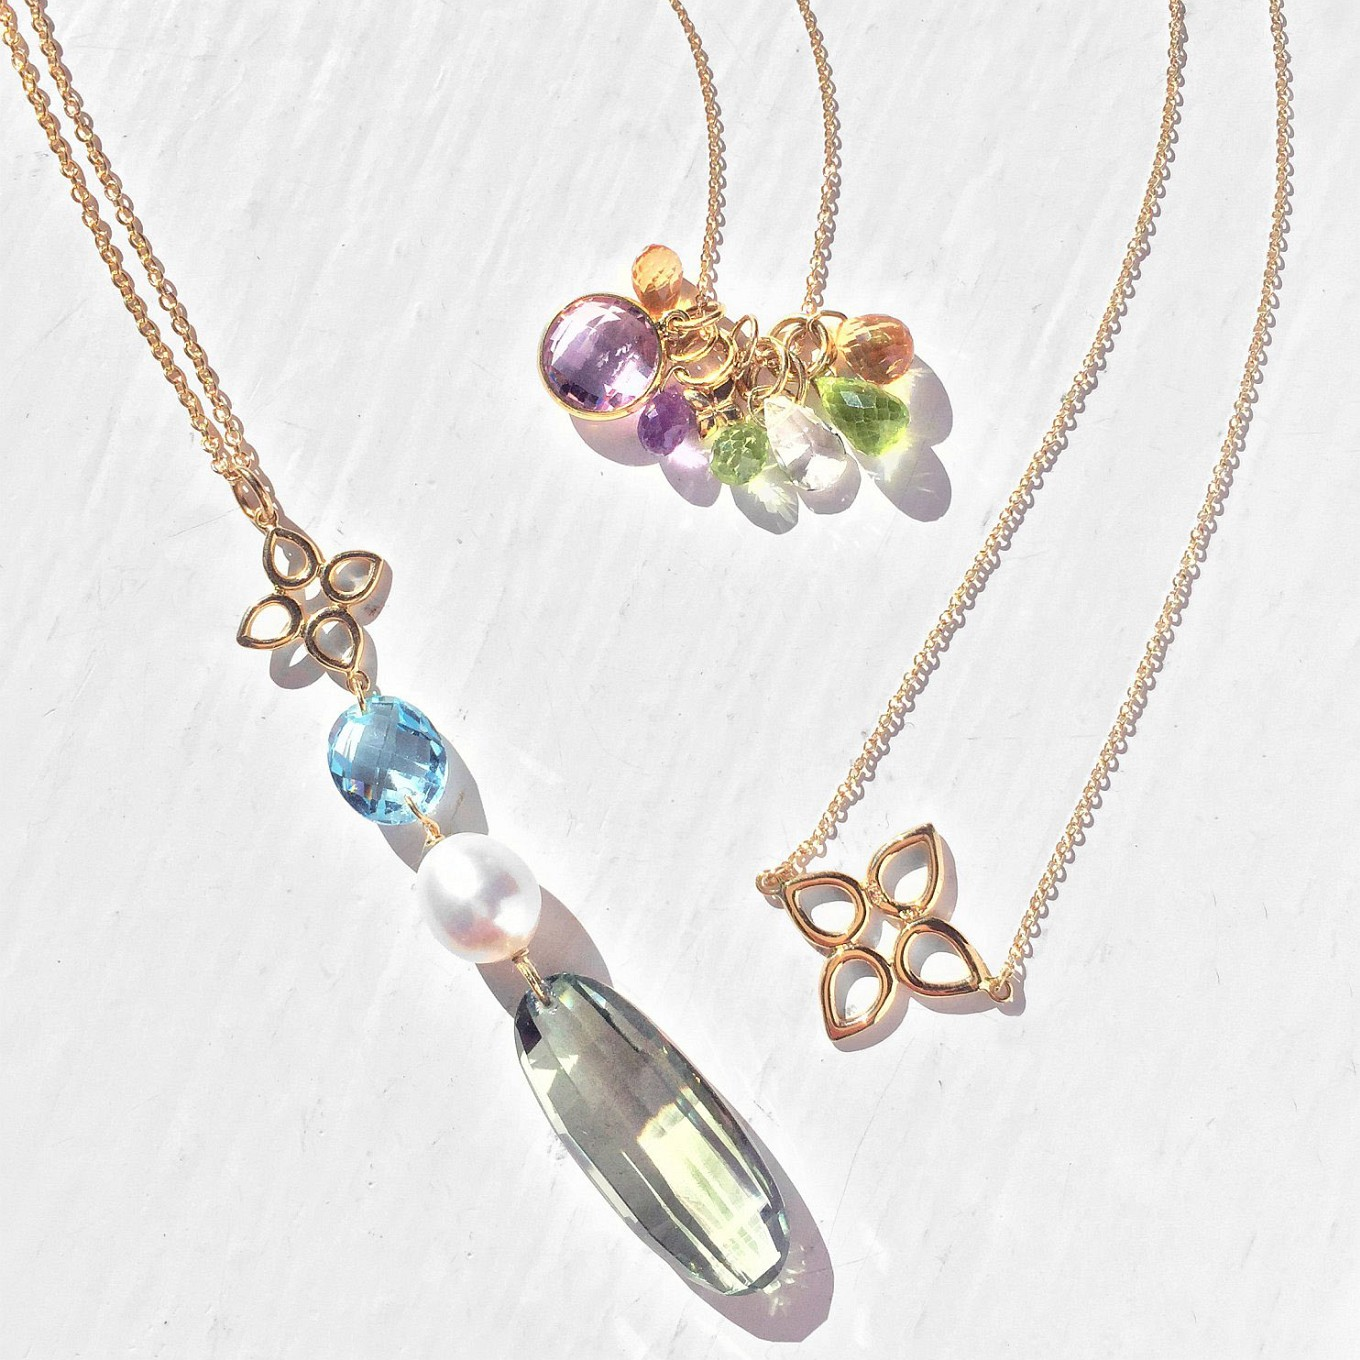 JdJ Studio Pendants. Gemstone & Gold